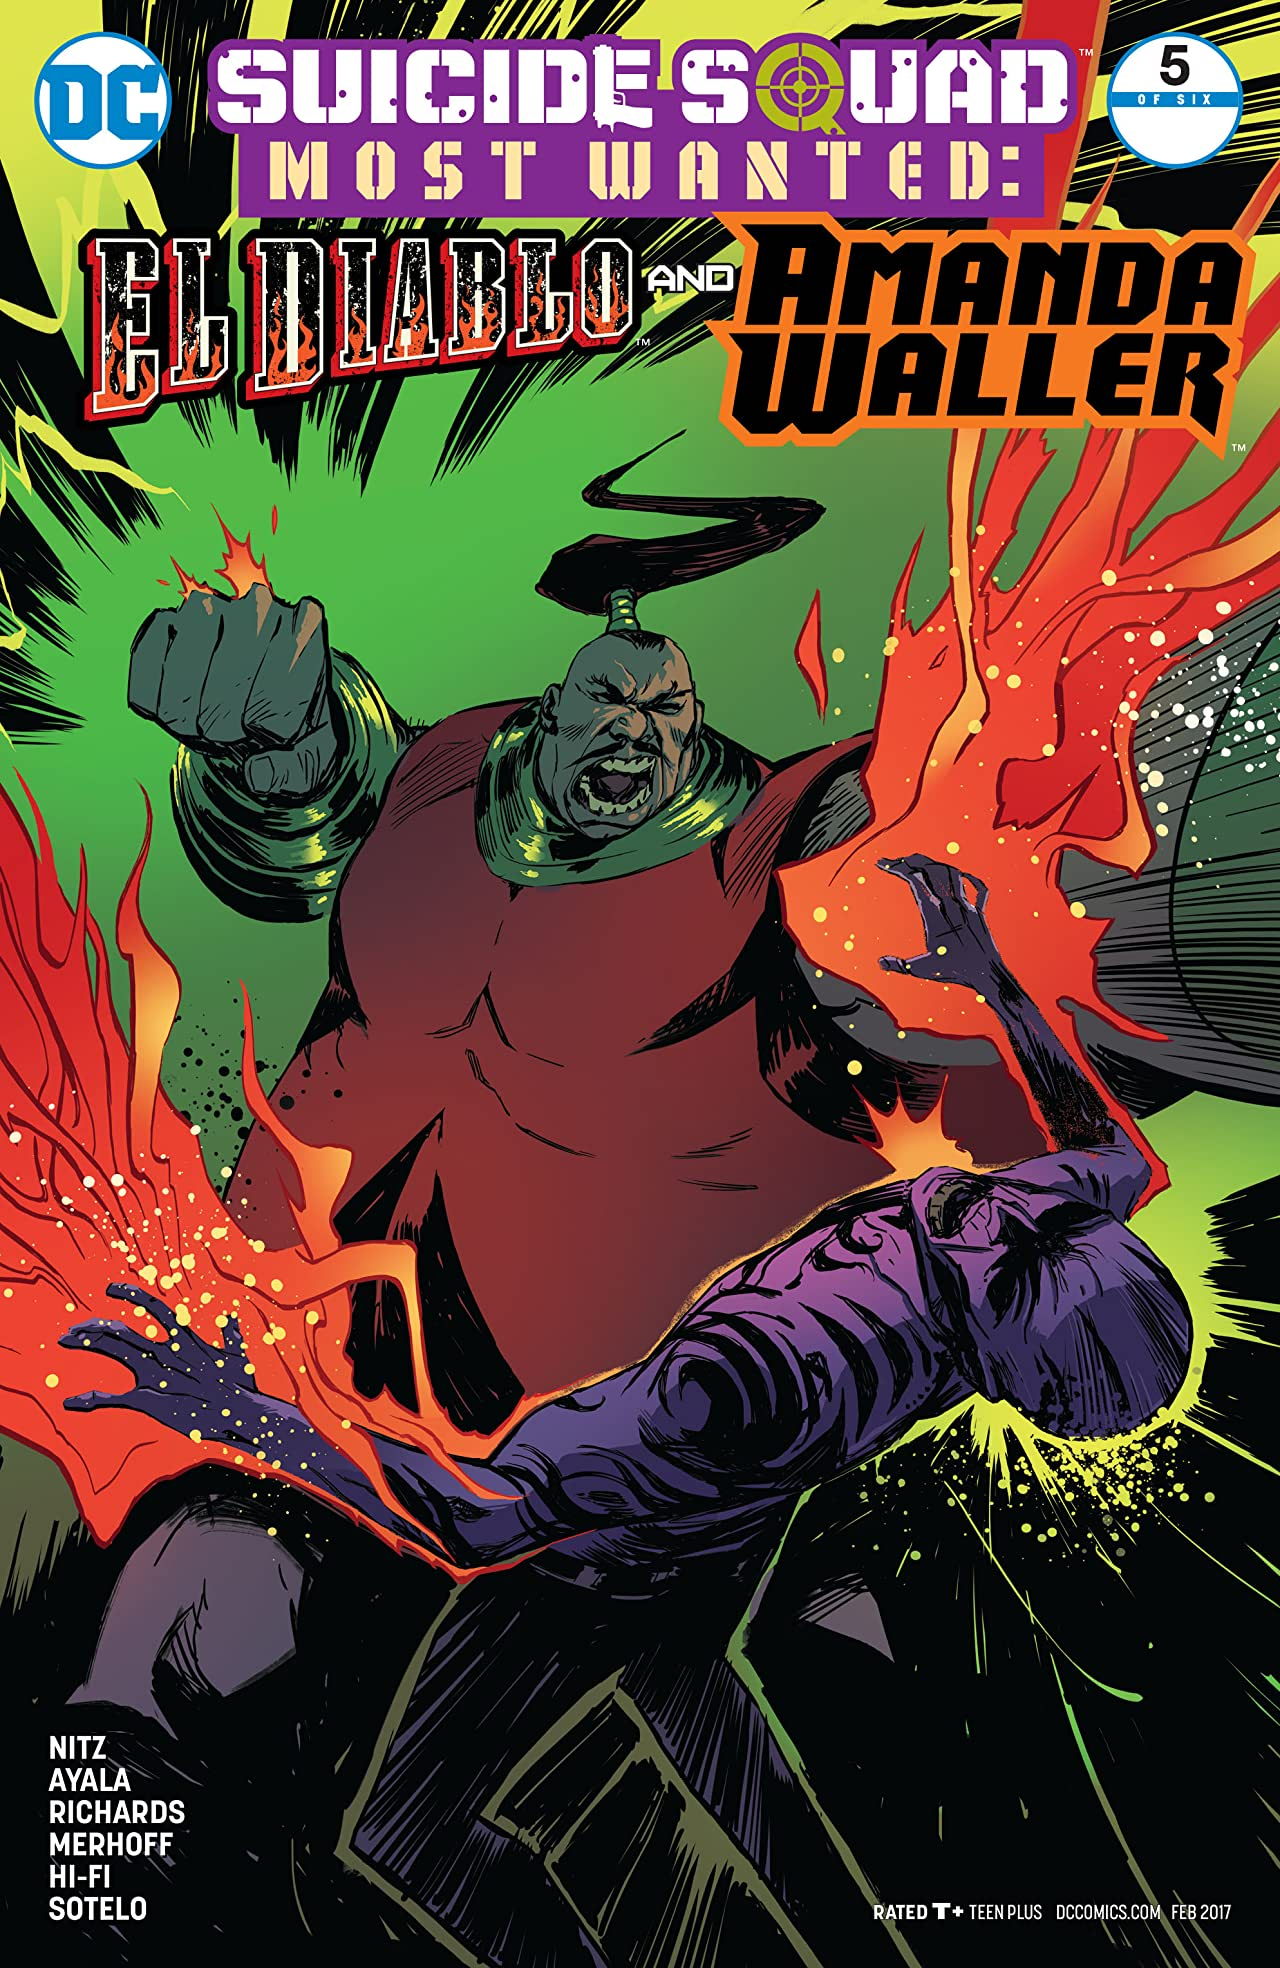 Suicide Squad Most Wanted: El Diablo and Amanda Waller (2016-2017) #5